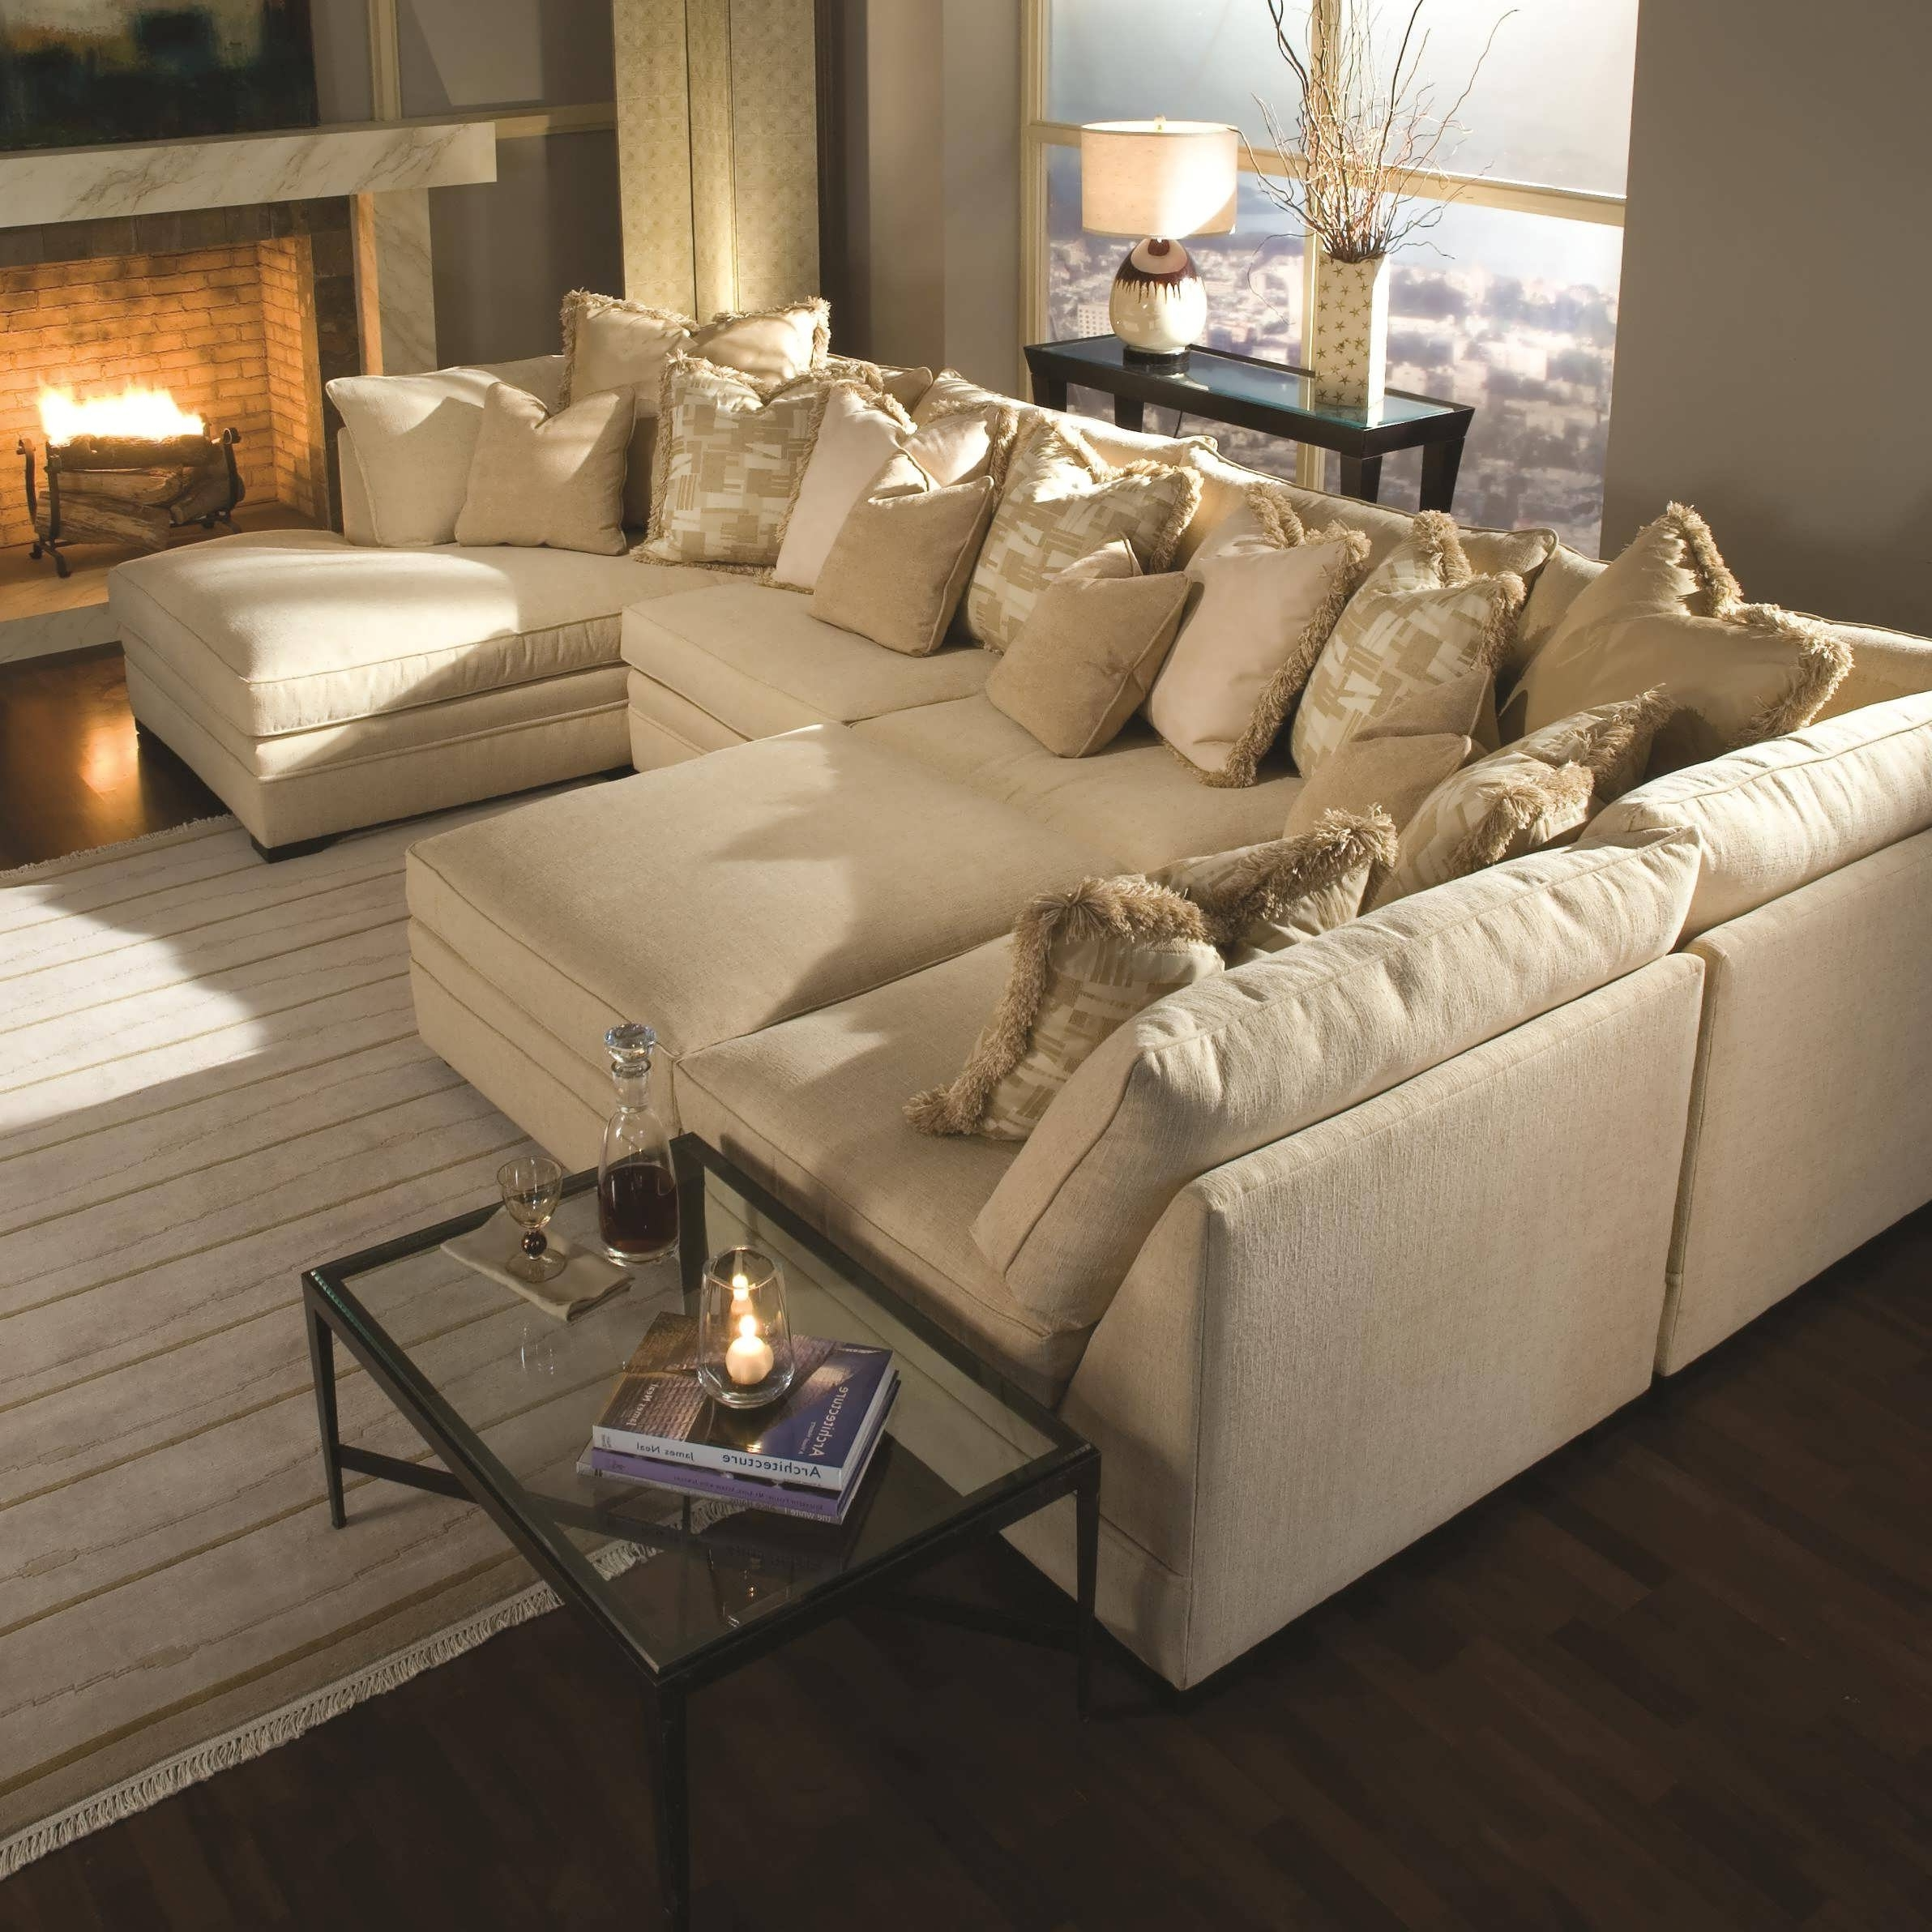 L Shaped Couches With Chaise Throughout Newest Sofa : L Shaped Couch Chaise Sofa Small Sectional Sofa Sectional (View 6 of 15)